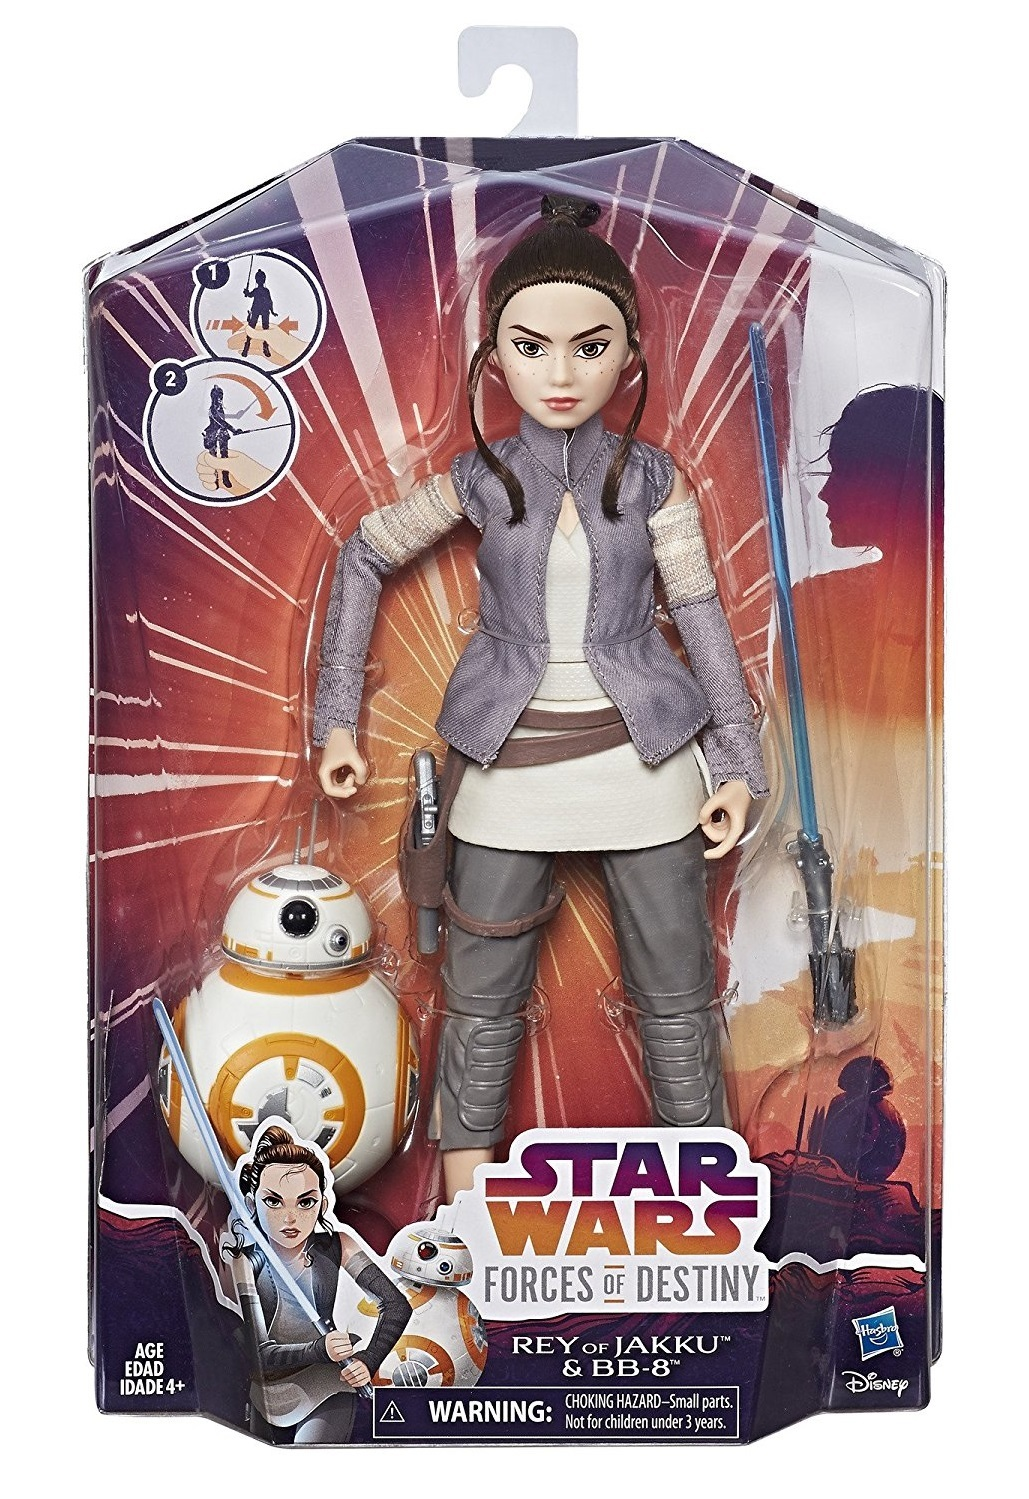 Star Wars: Forces of Destiny Adventure Doll - Rey & BB-8 image